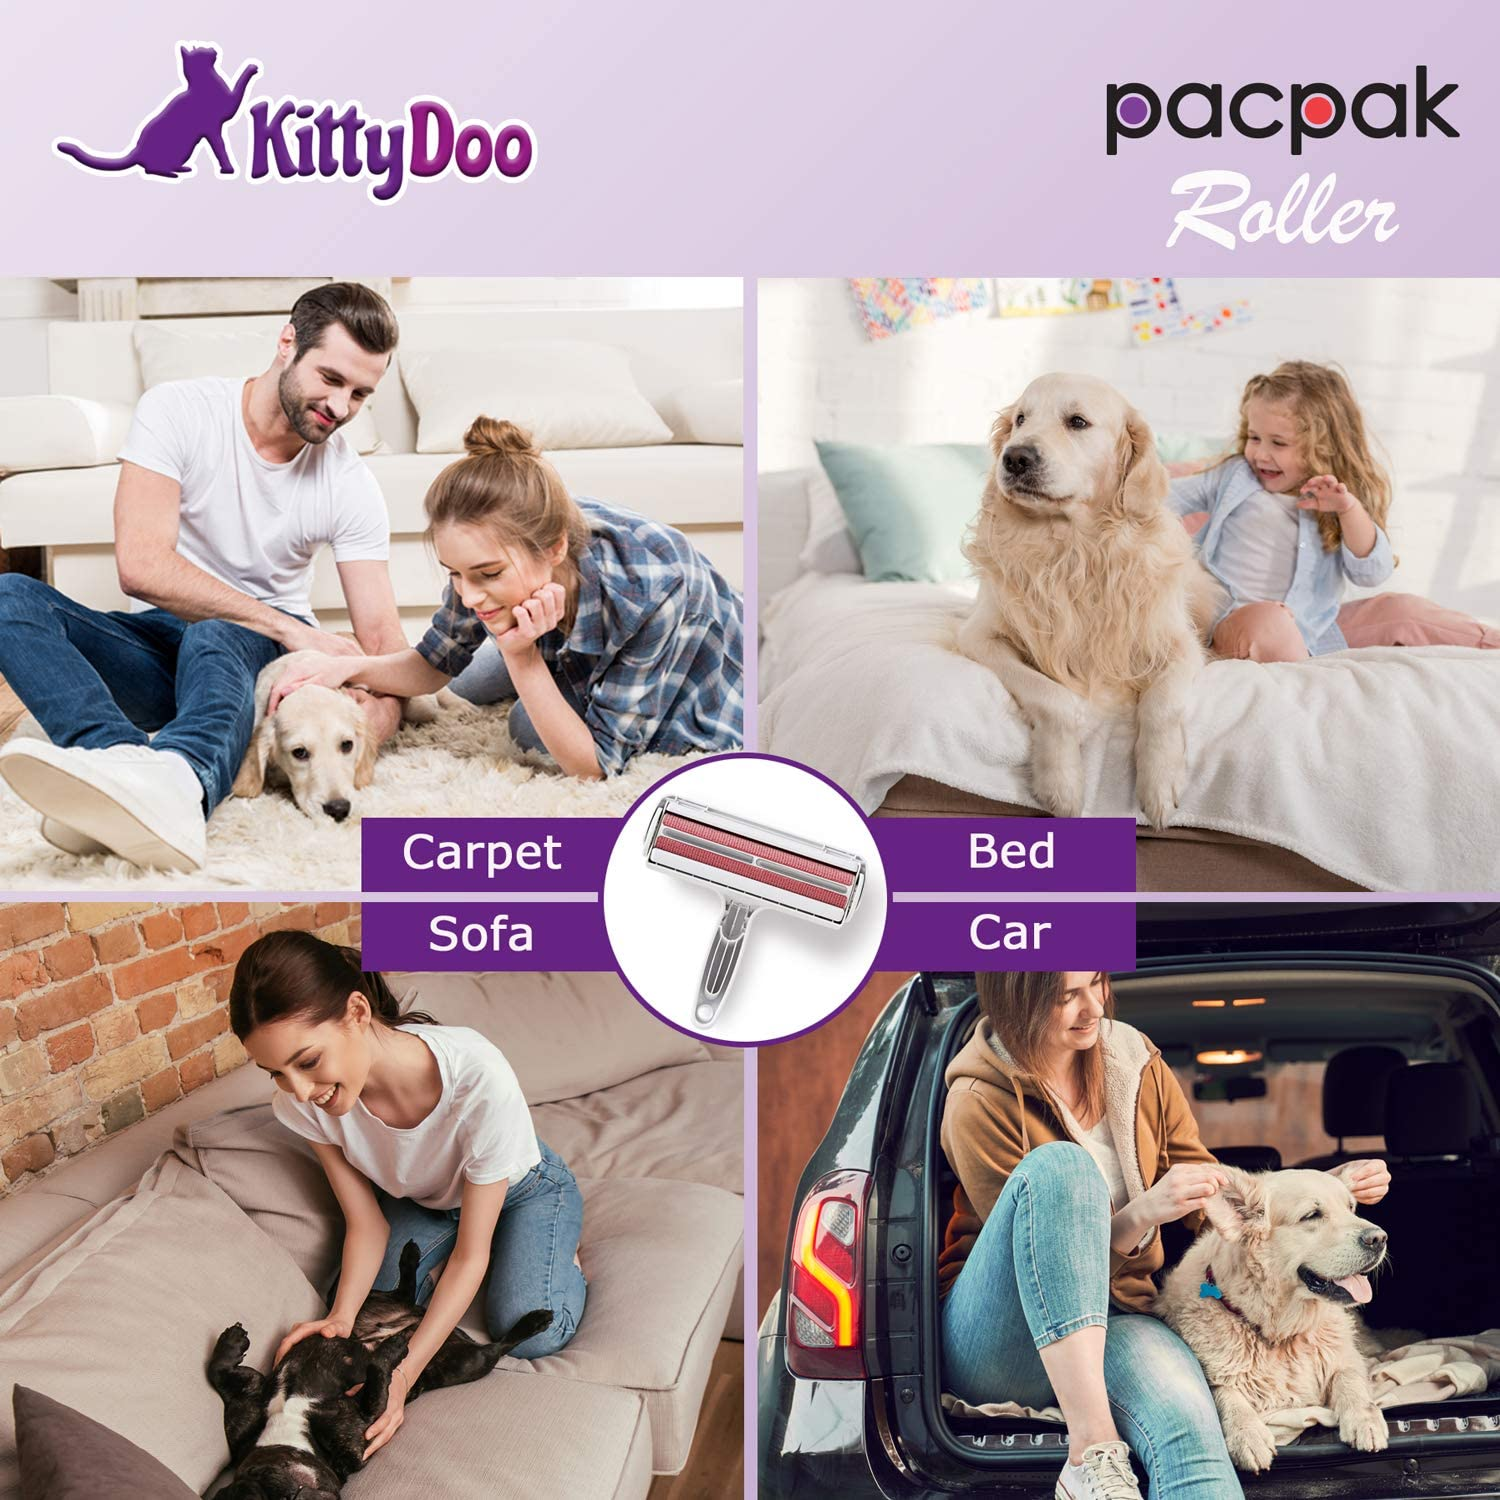 Original Cat and Dog Hair Remover Formerly PakuPaku KittyDoo PacPak Pet Hair Remover Suitable as an Upholstery Brush and Carpet Hair Remover Roller Reusable Lint Roller for Pet Fur